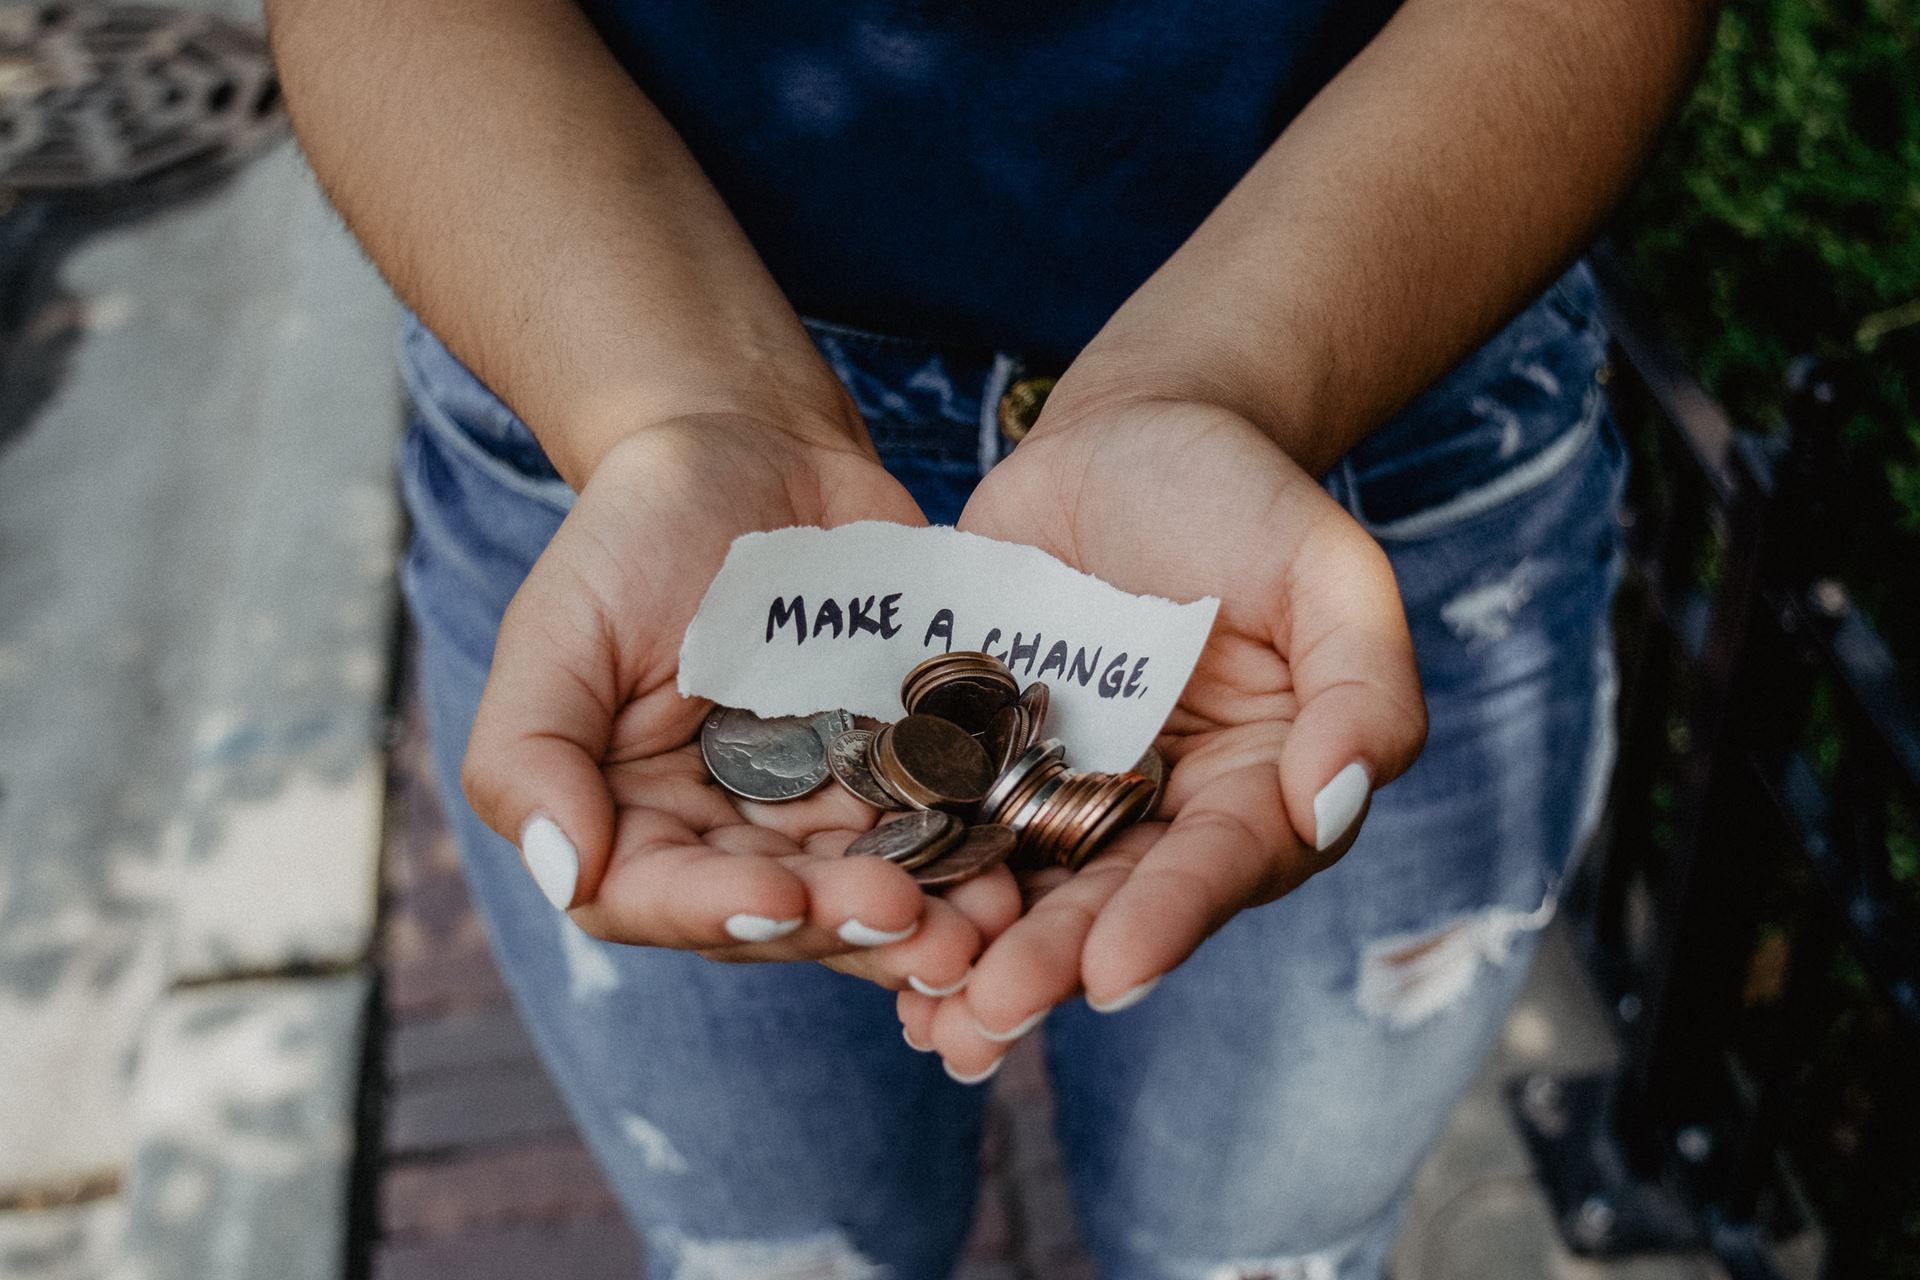 Image of hands holding a pile of a change and a note that says make a change. Photo by Kat Yukawa on Unsplash.